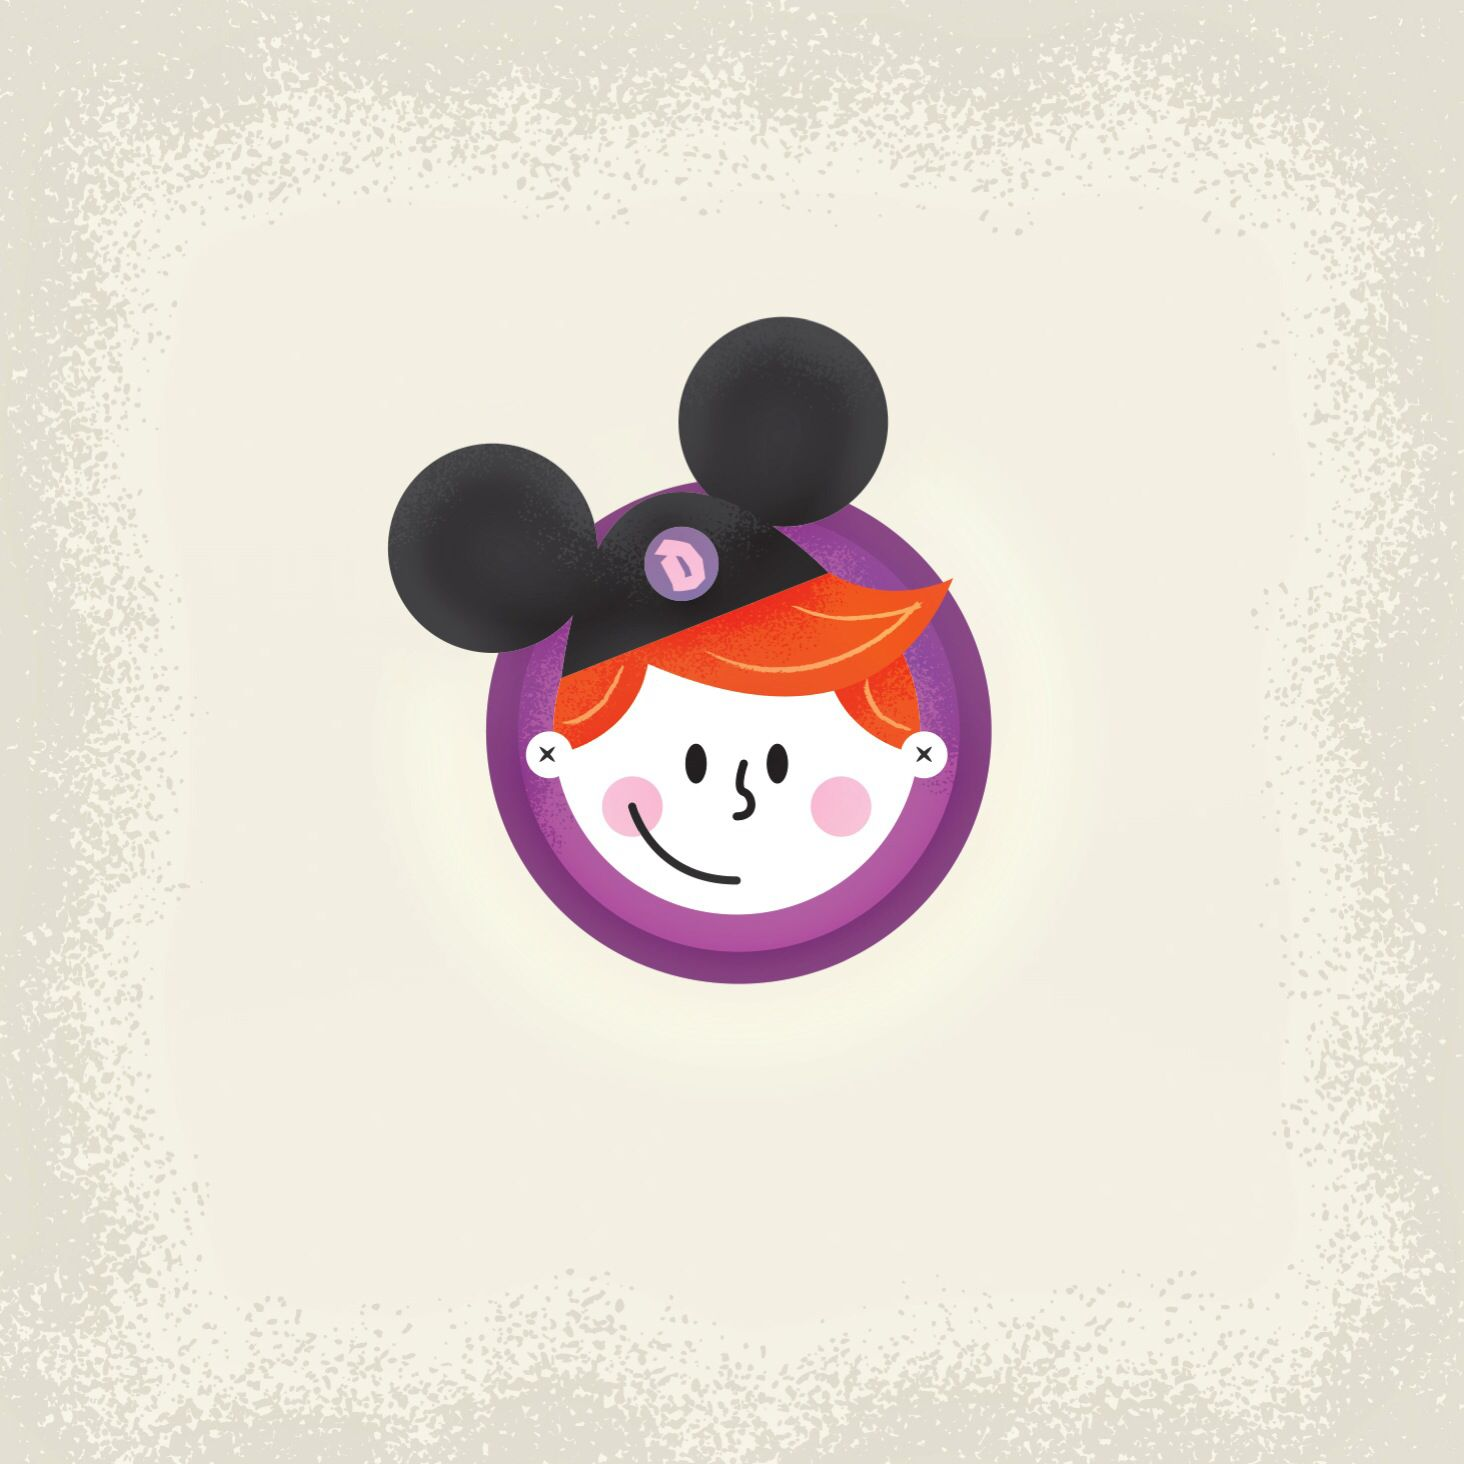 Small illustration for a social graphic on toddlers at the theme parks.